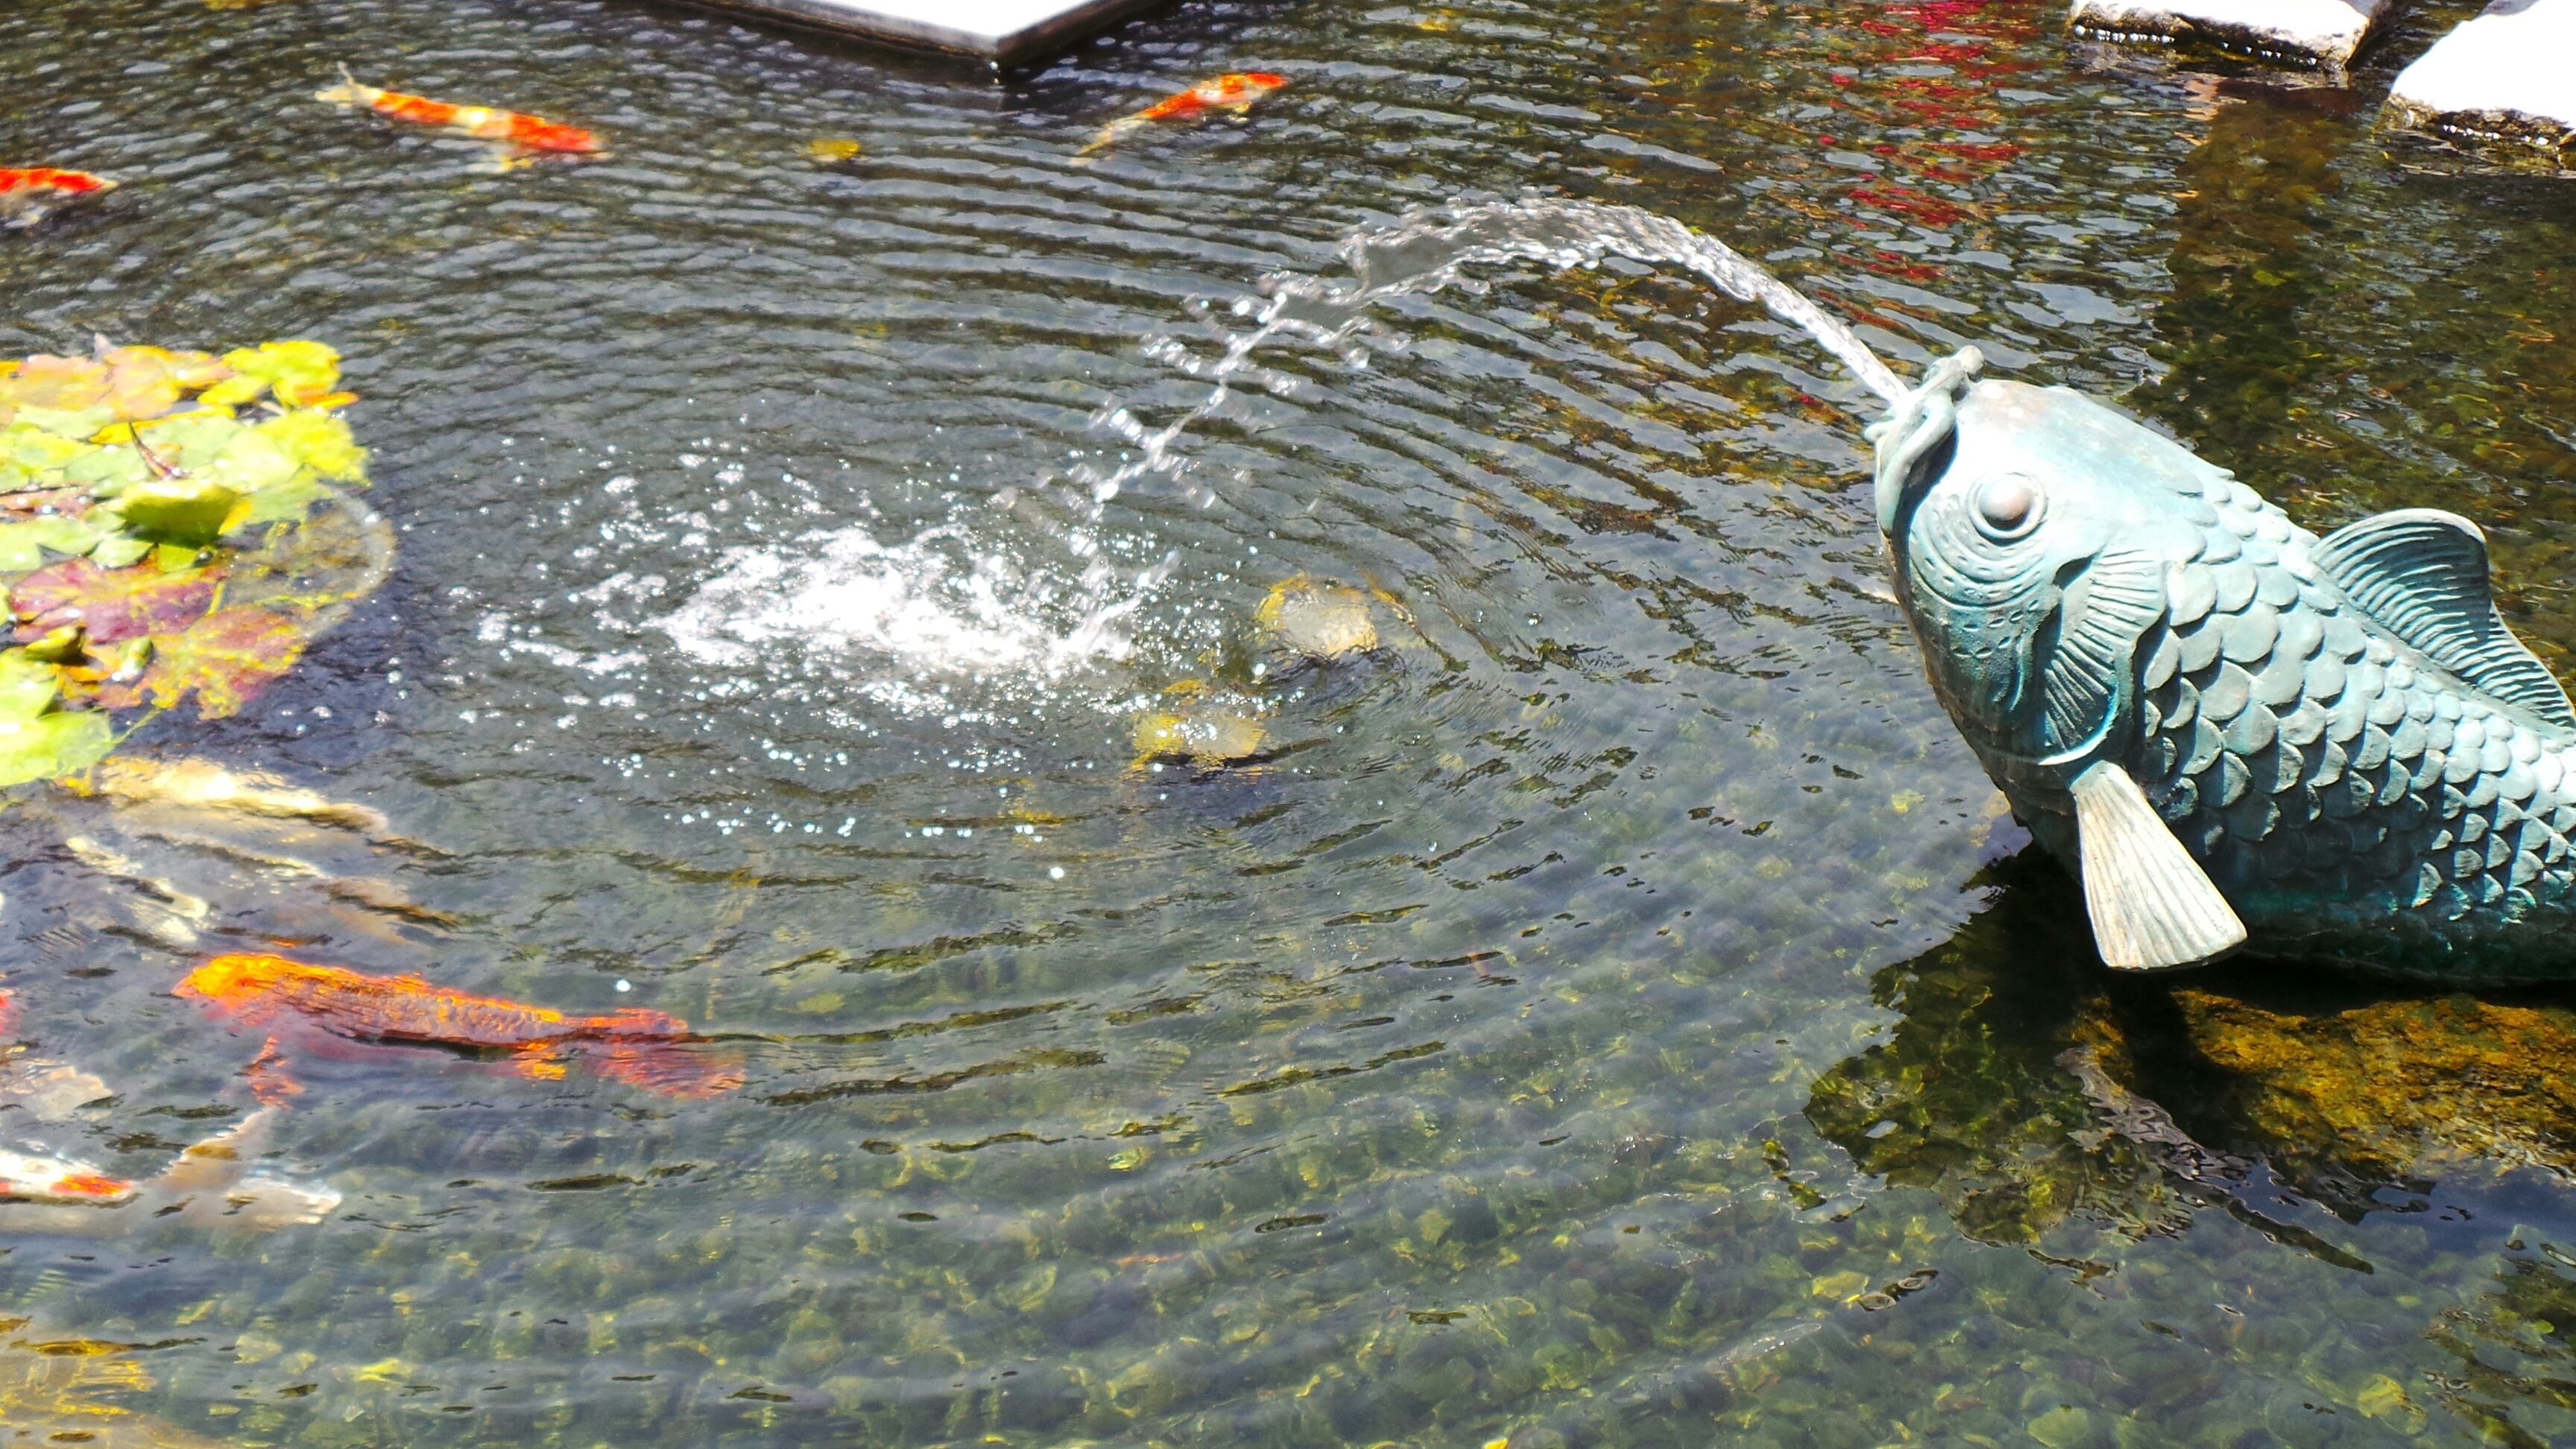 Guide to the fashion island koi ponds in newport beach for Koi pond in house